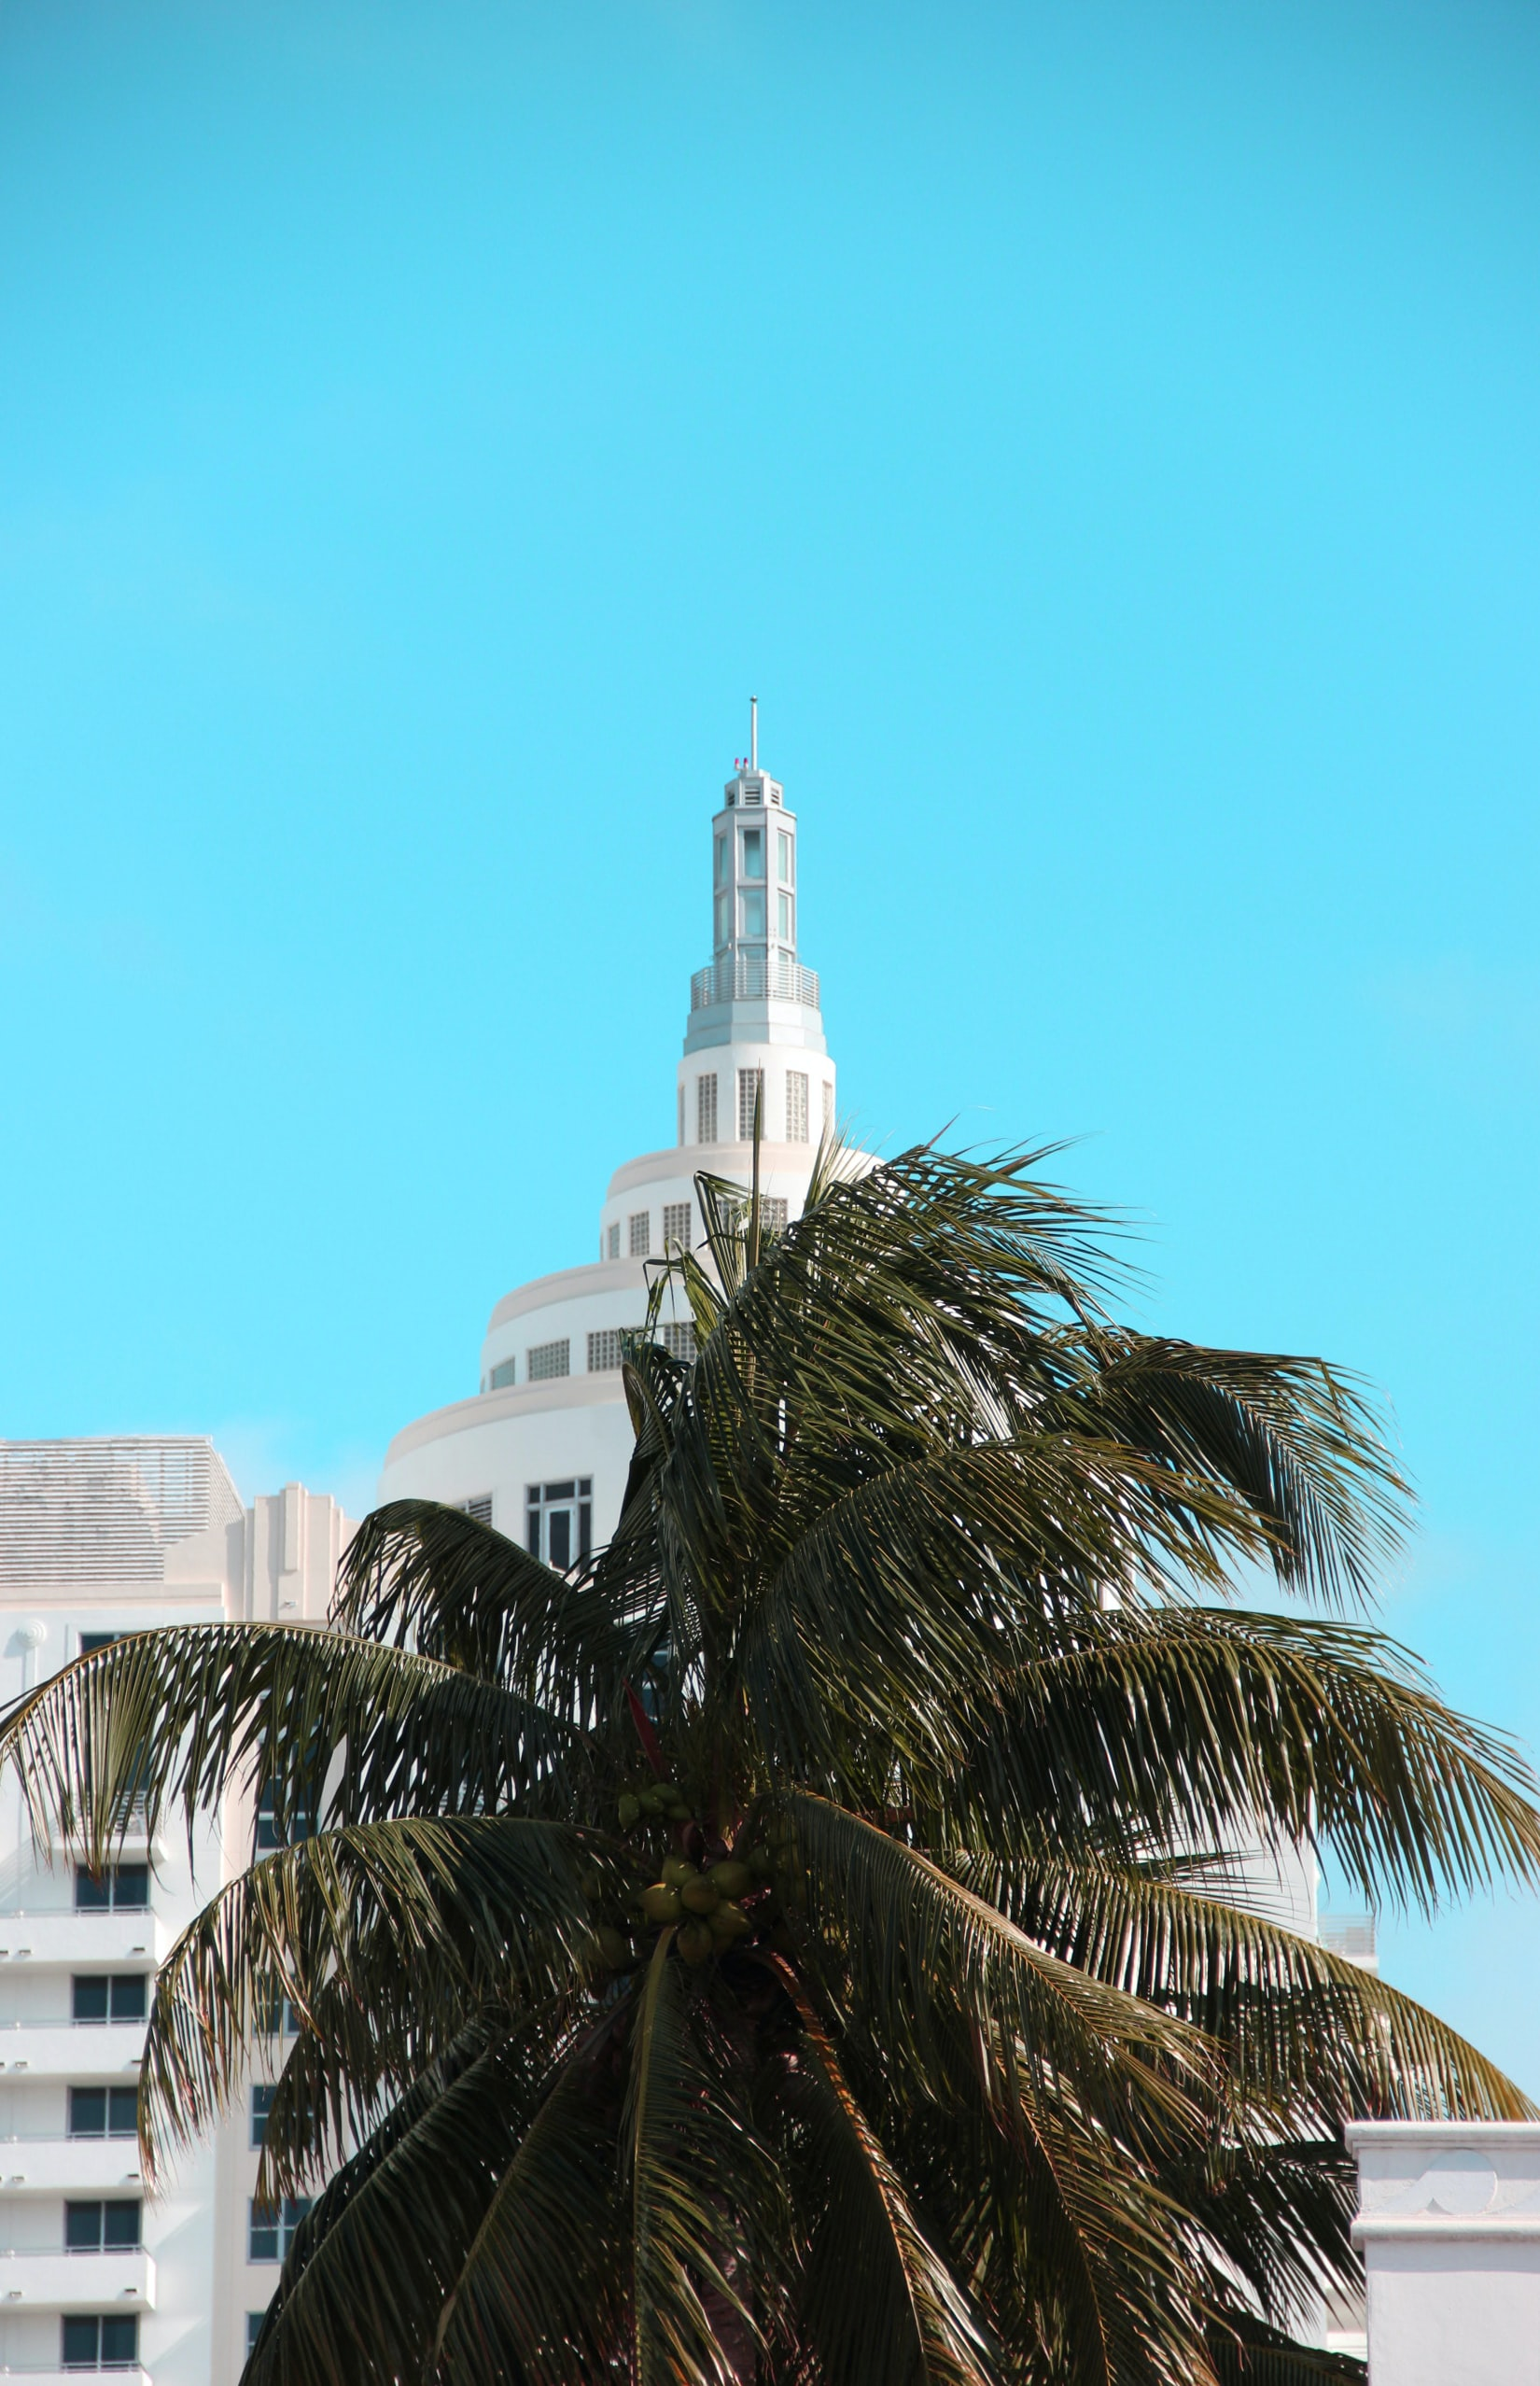 coconut tree near white building